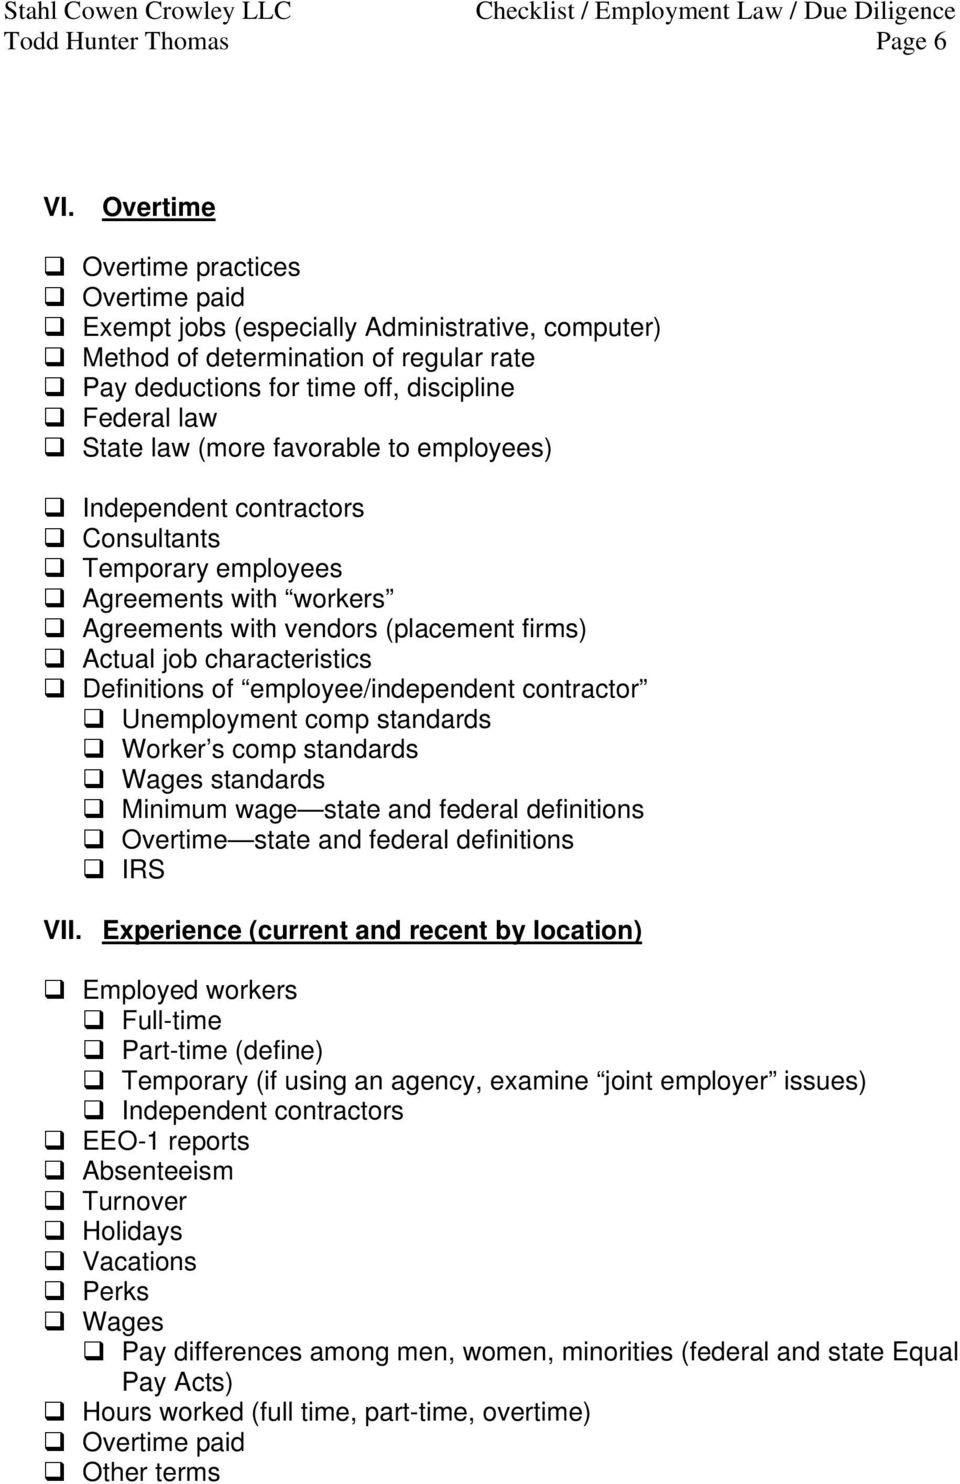 checklist of employment issues for due diligence employment law